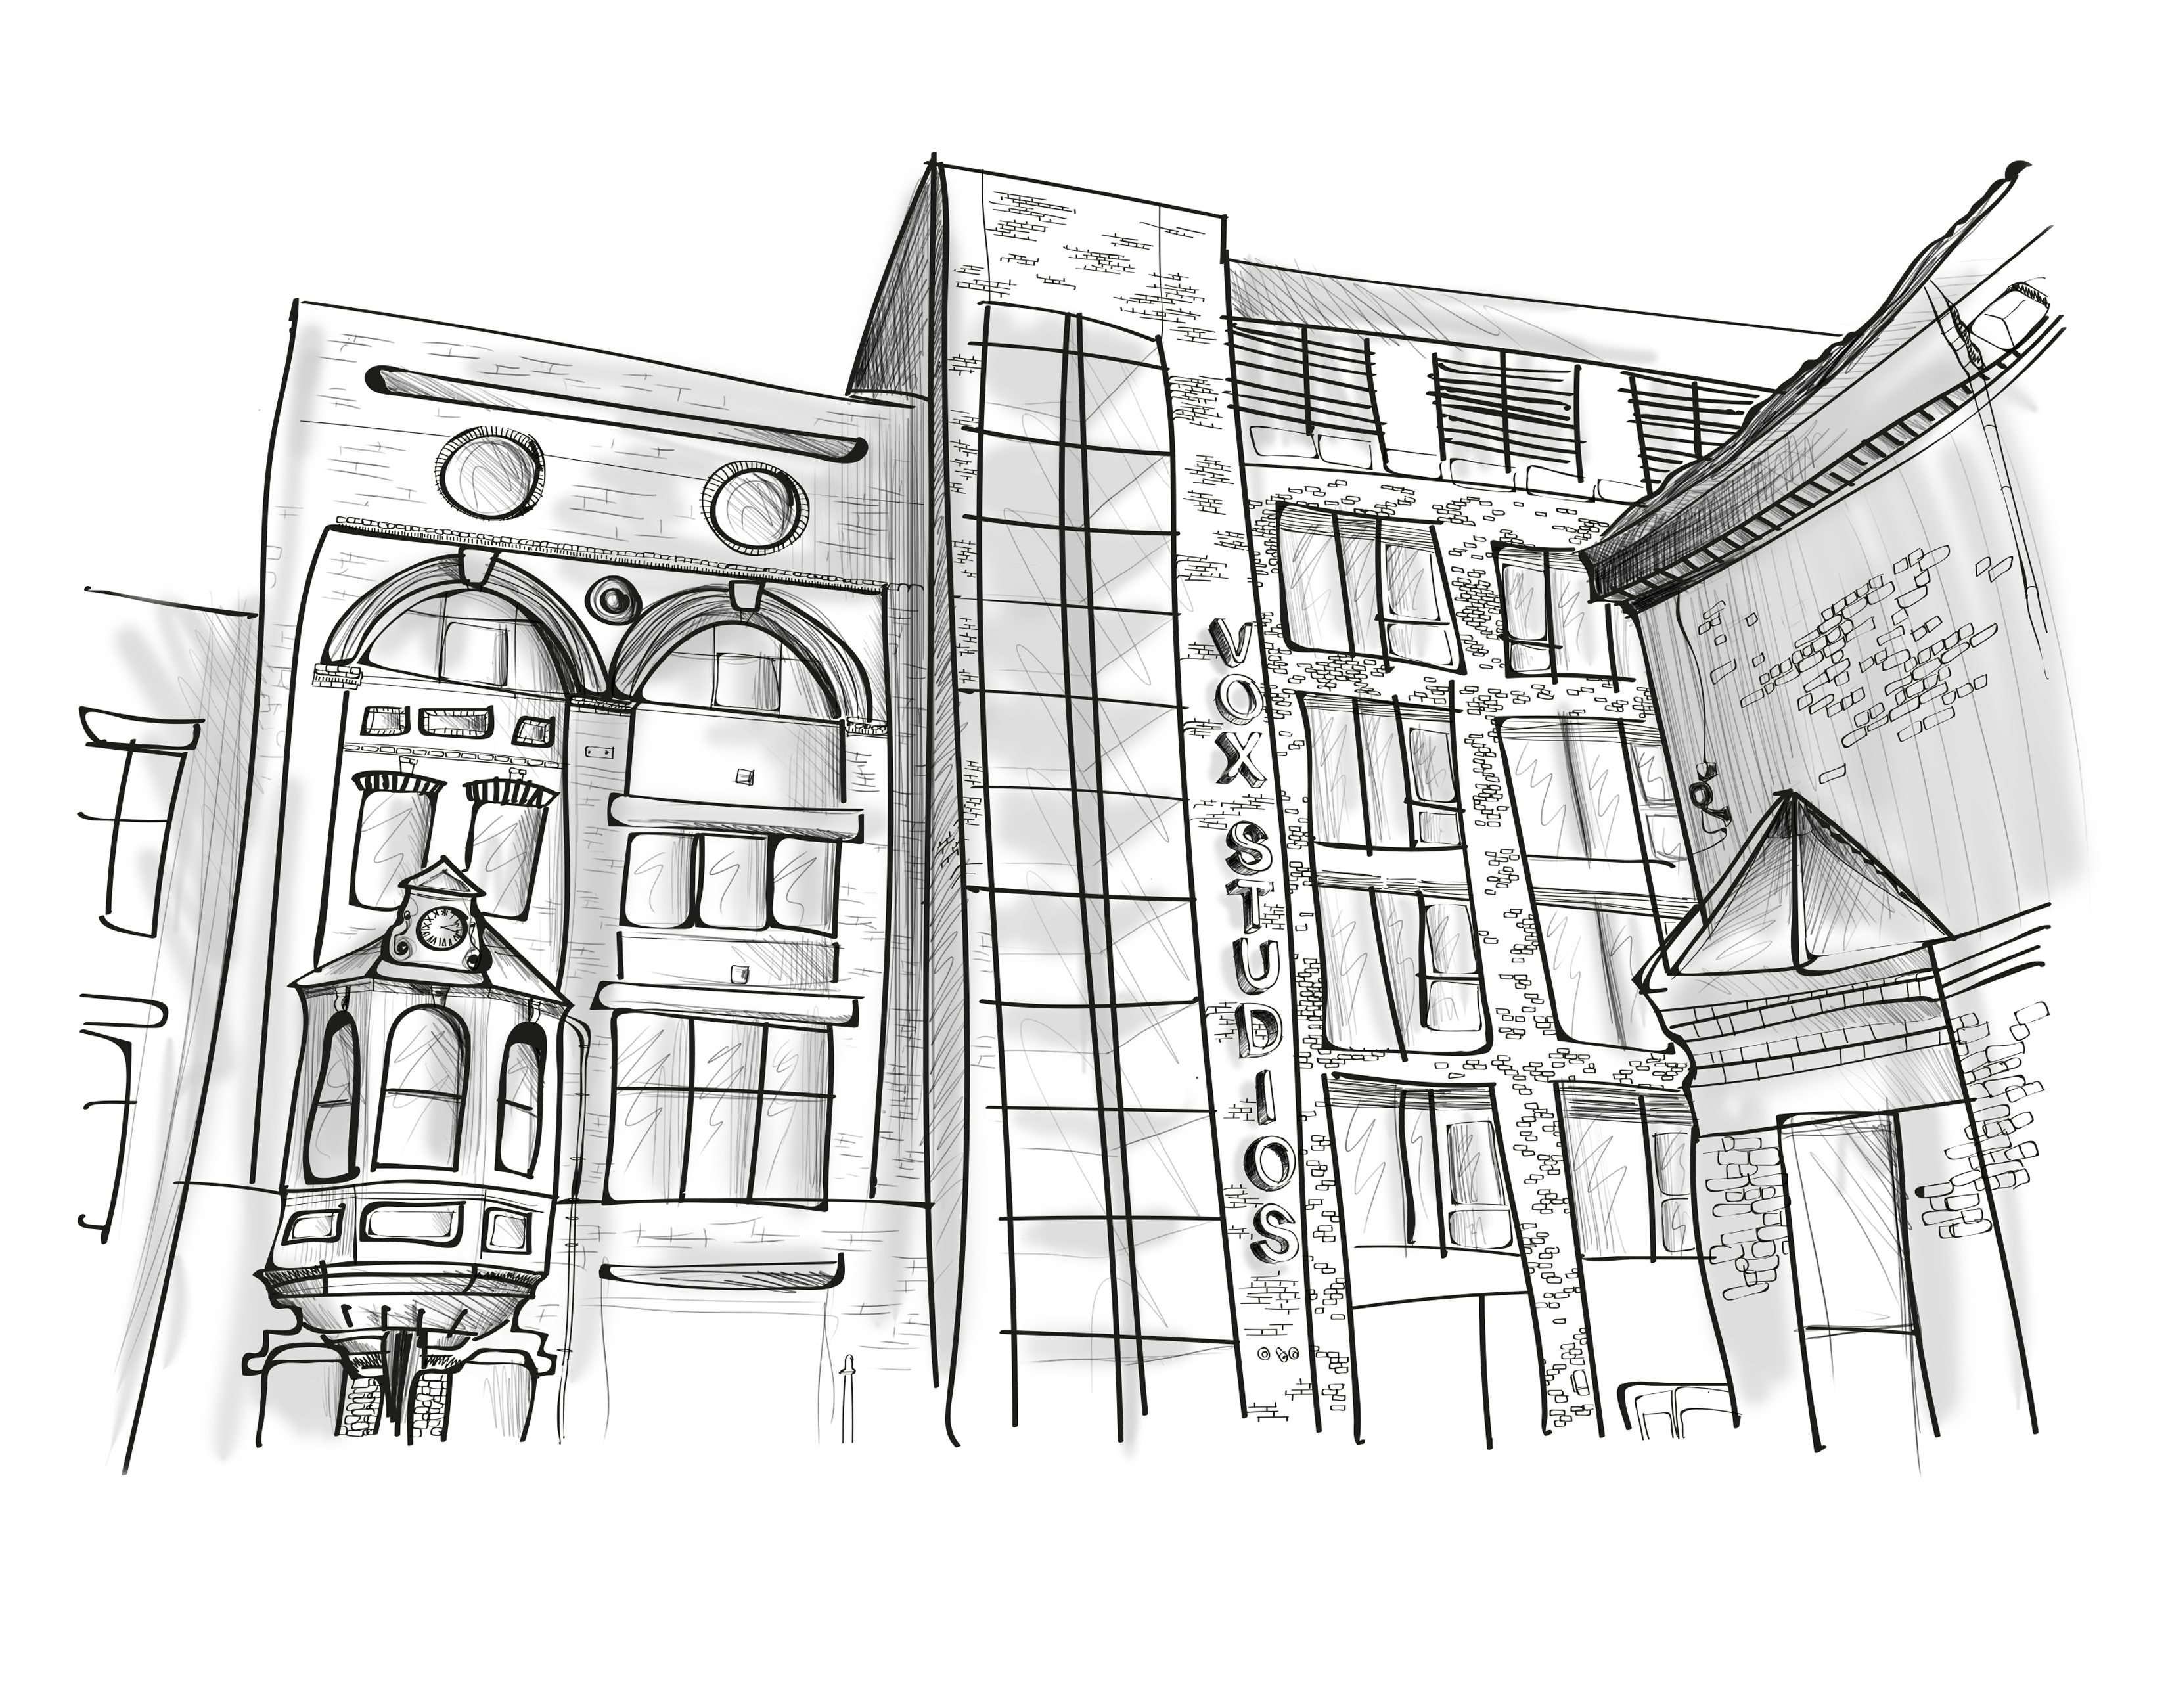 Architectual drawing black and white. Collection of free street